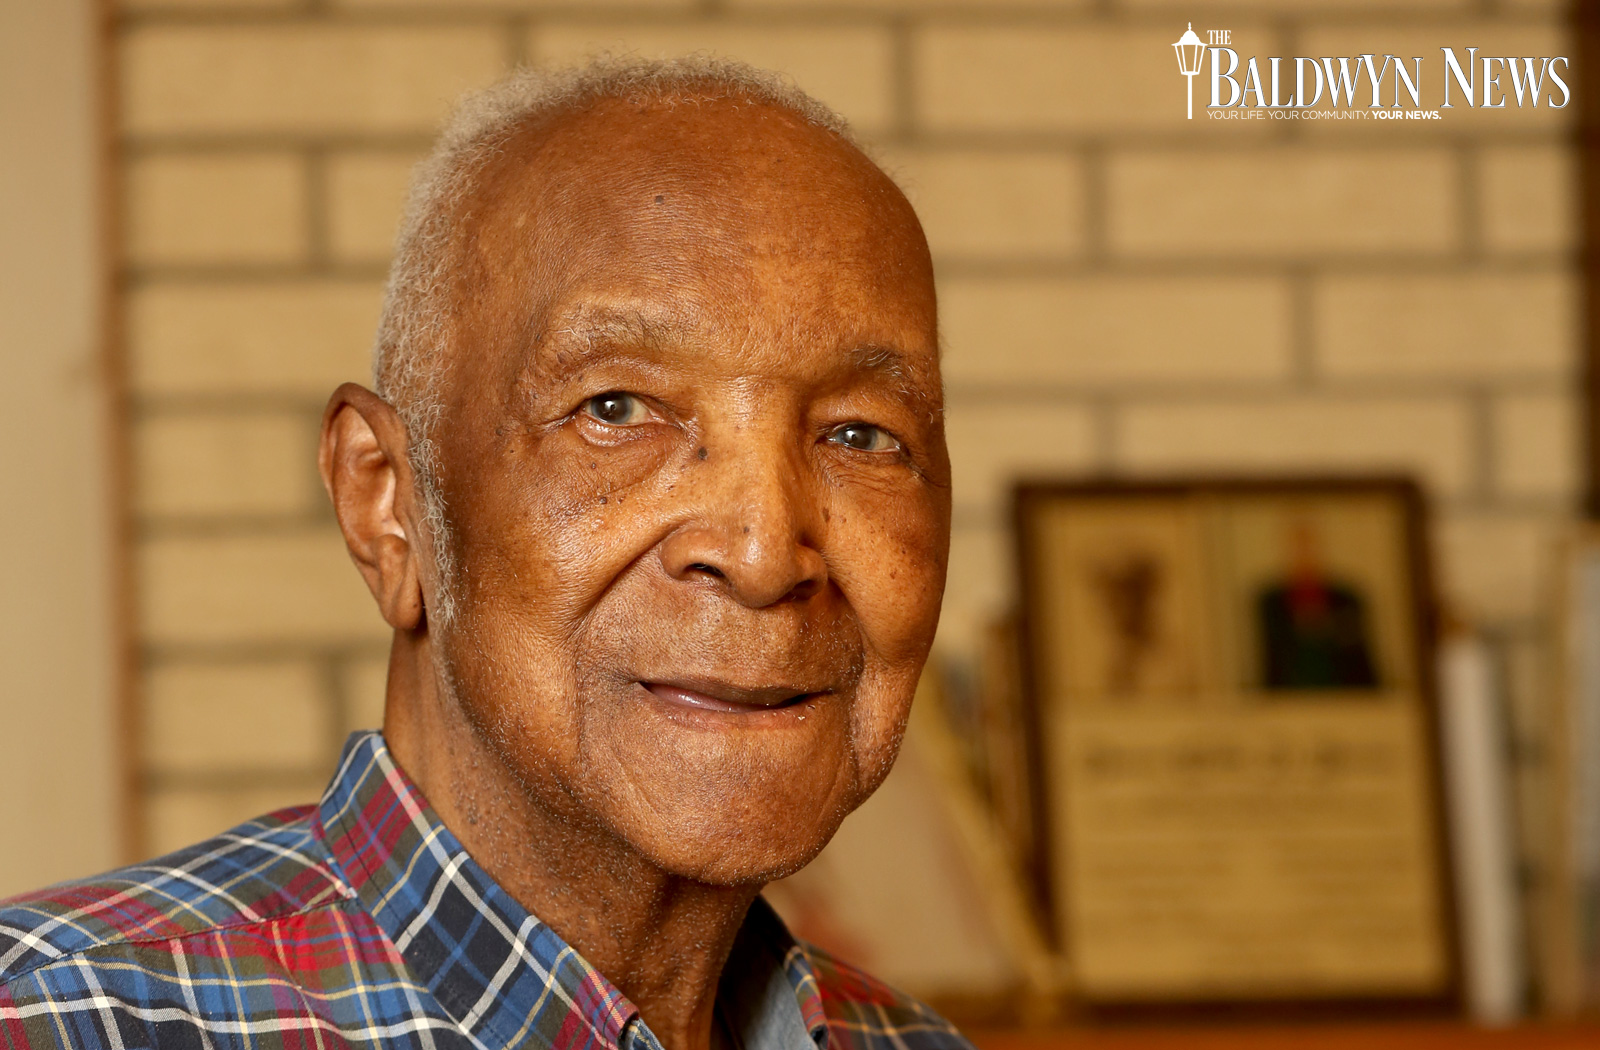 Willie-Burress-WW-II-Veteran